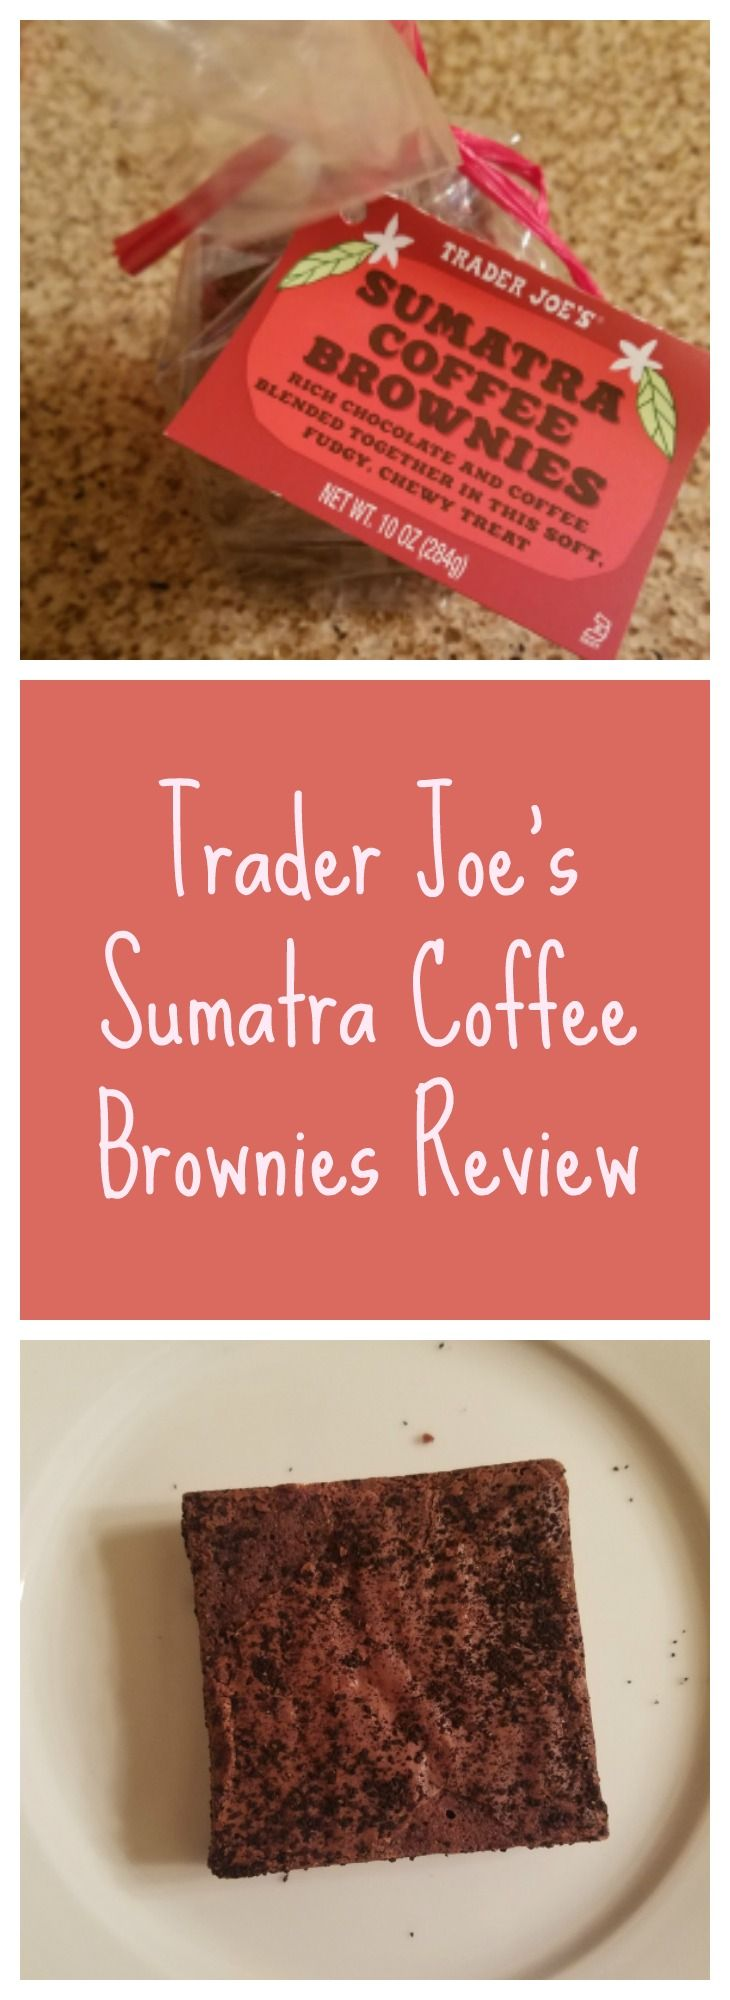 A full review of Trader Joe's Sumatra Coffee Brownies with nutritional information, ingredients, allergy information, how to prepare, pictures and thoughts on the product.